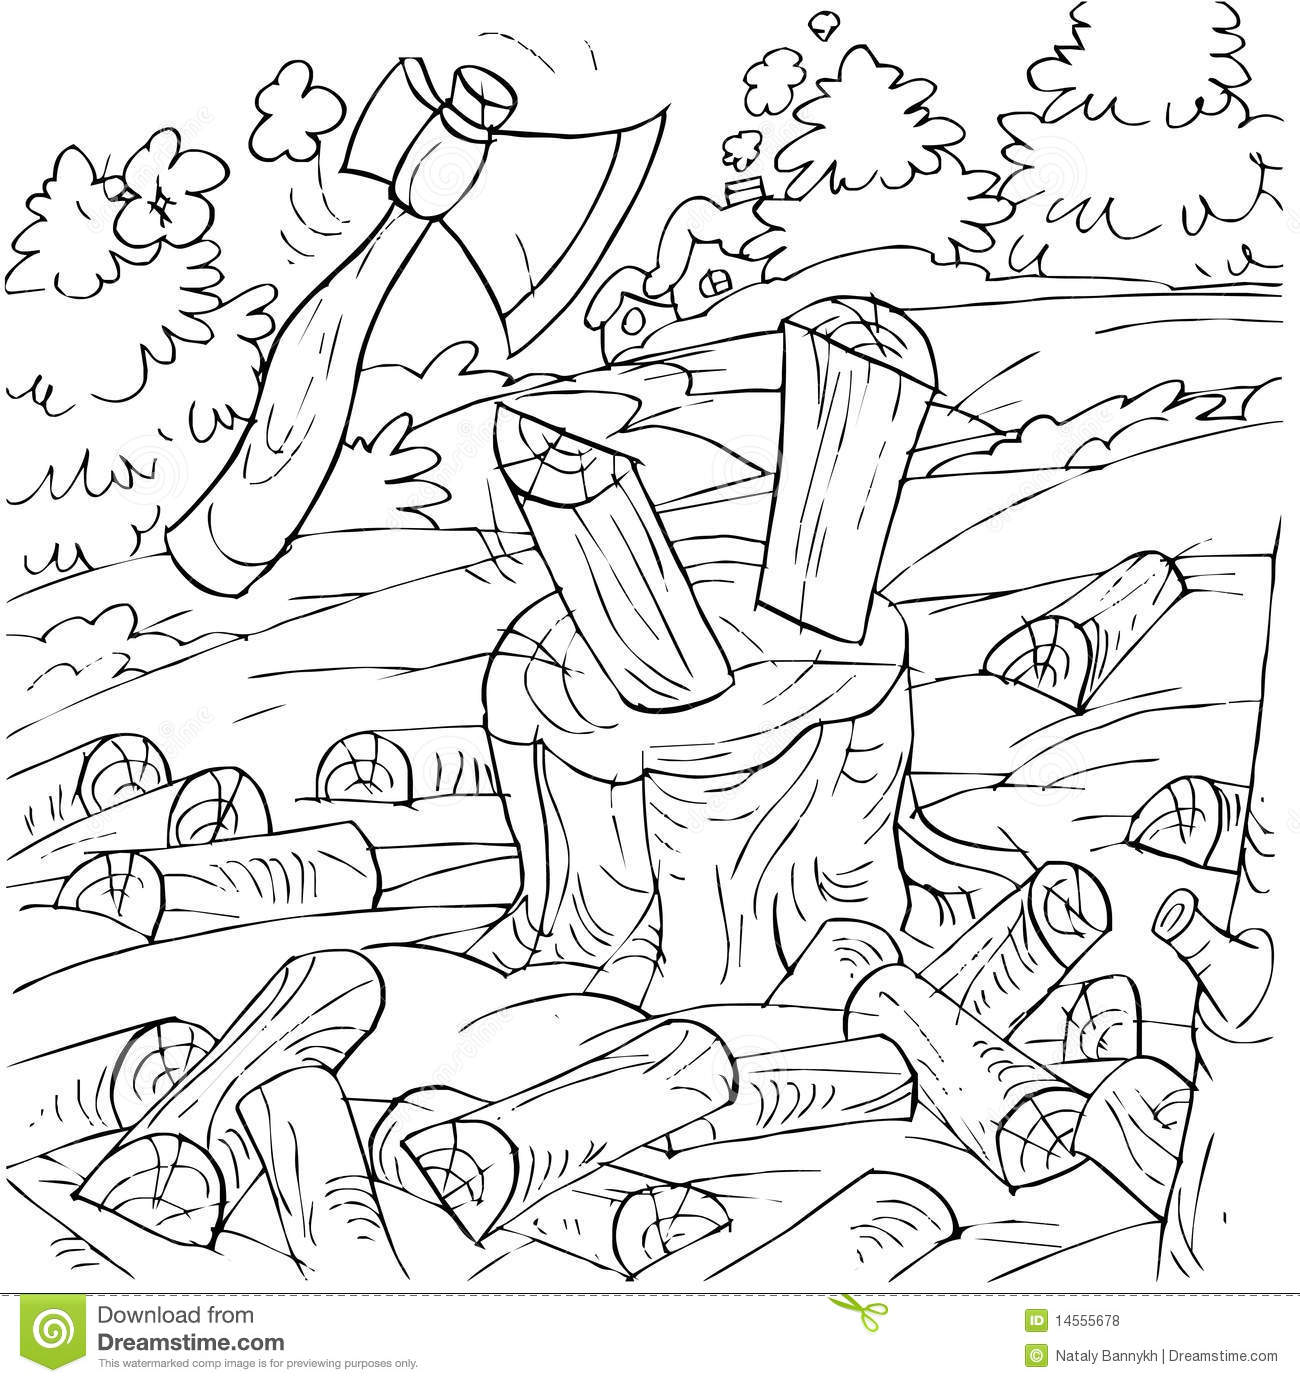 photos to coloring pages - photo#29